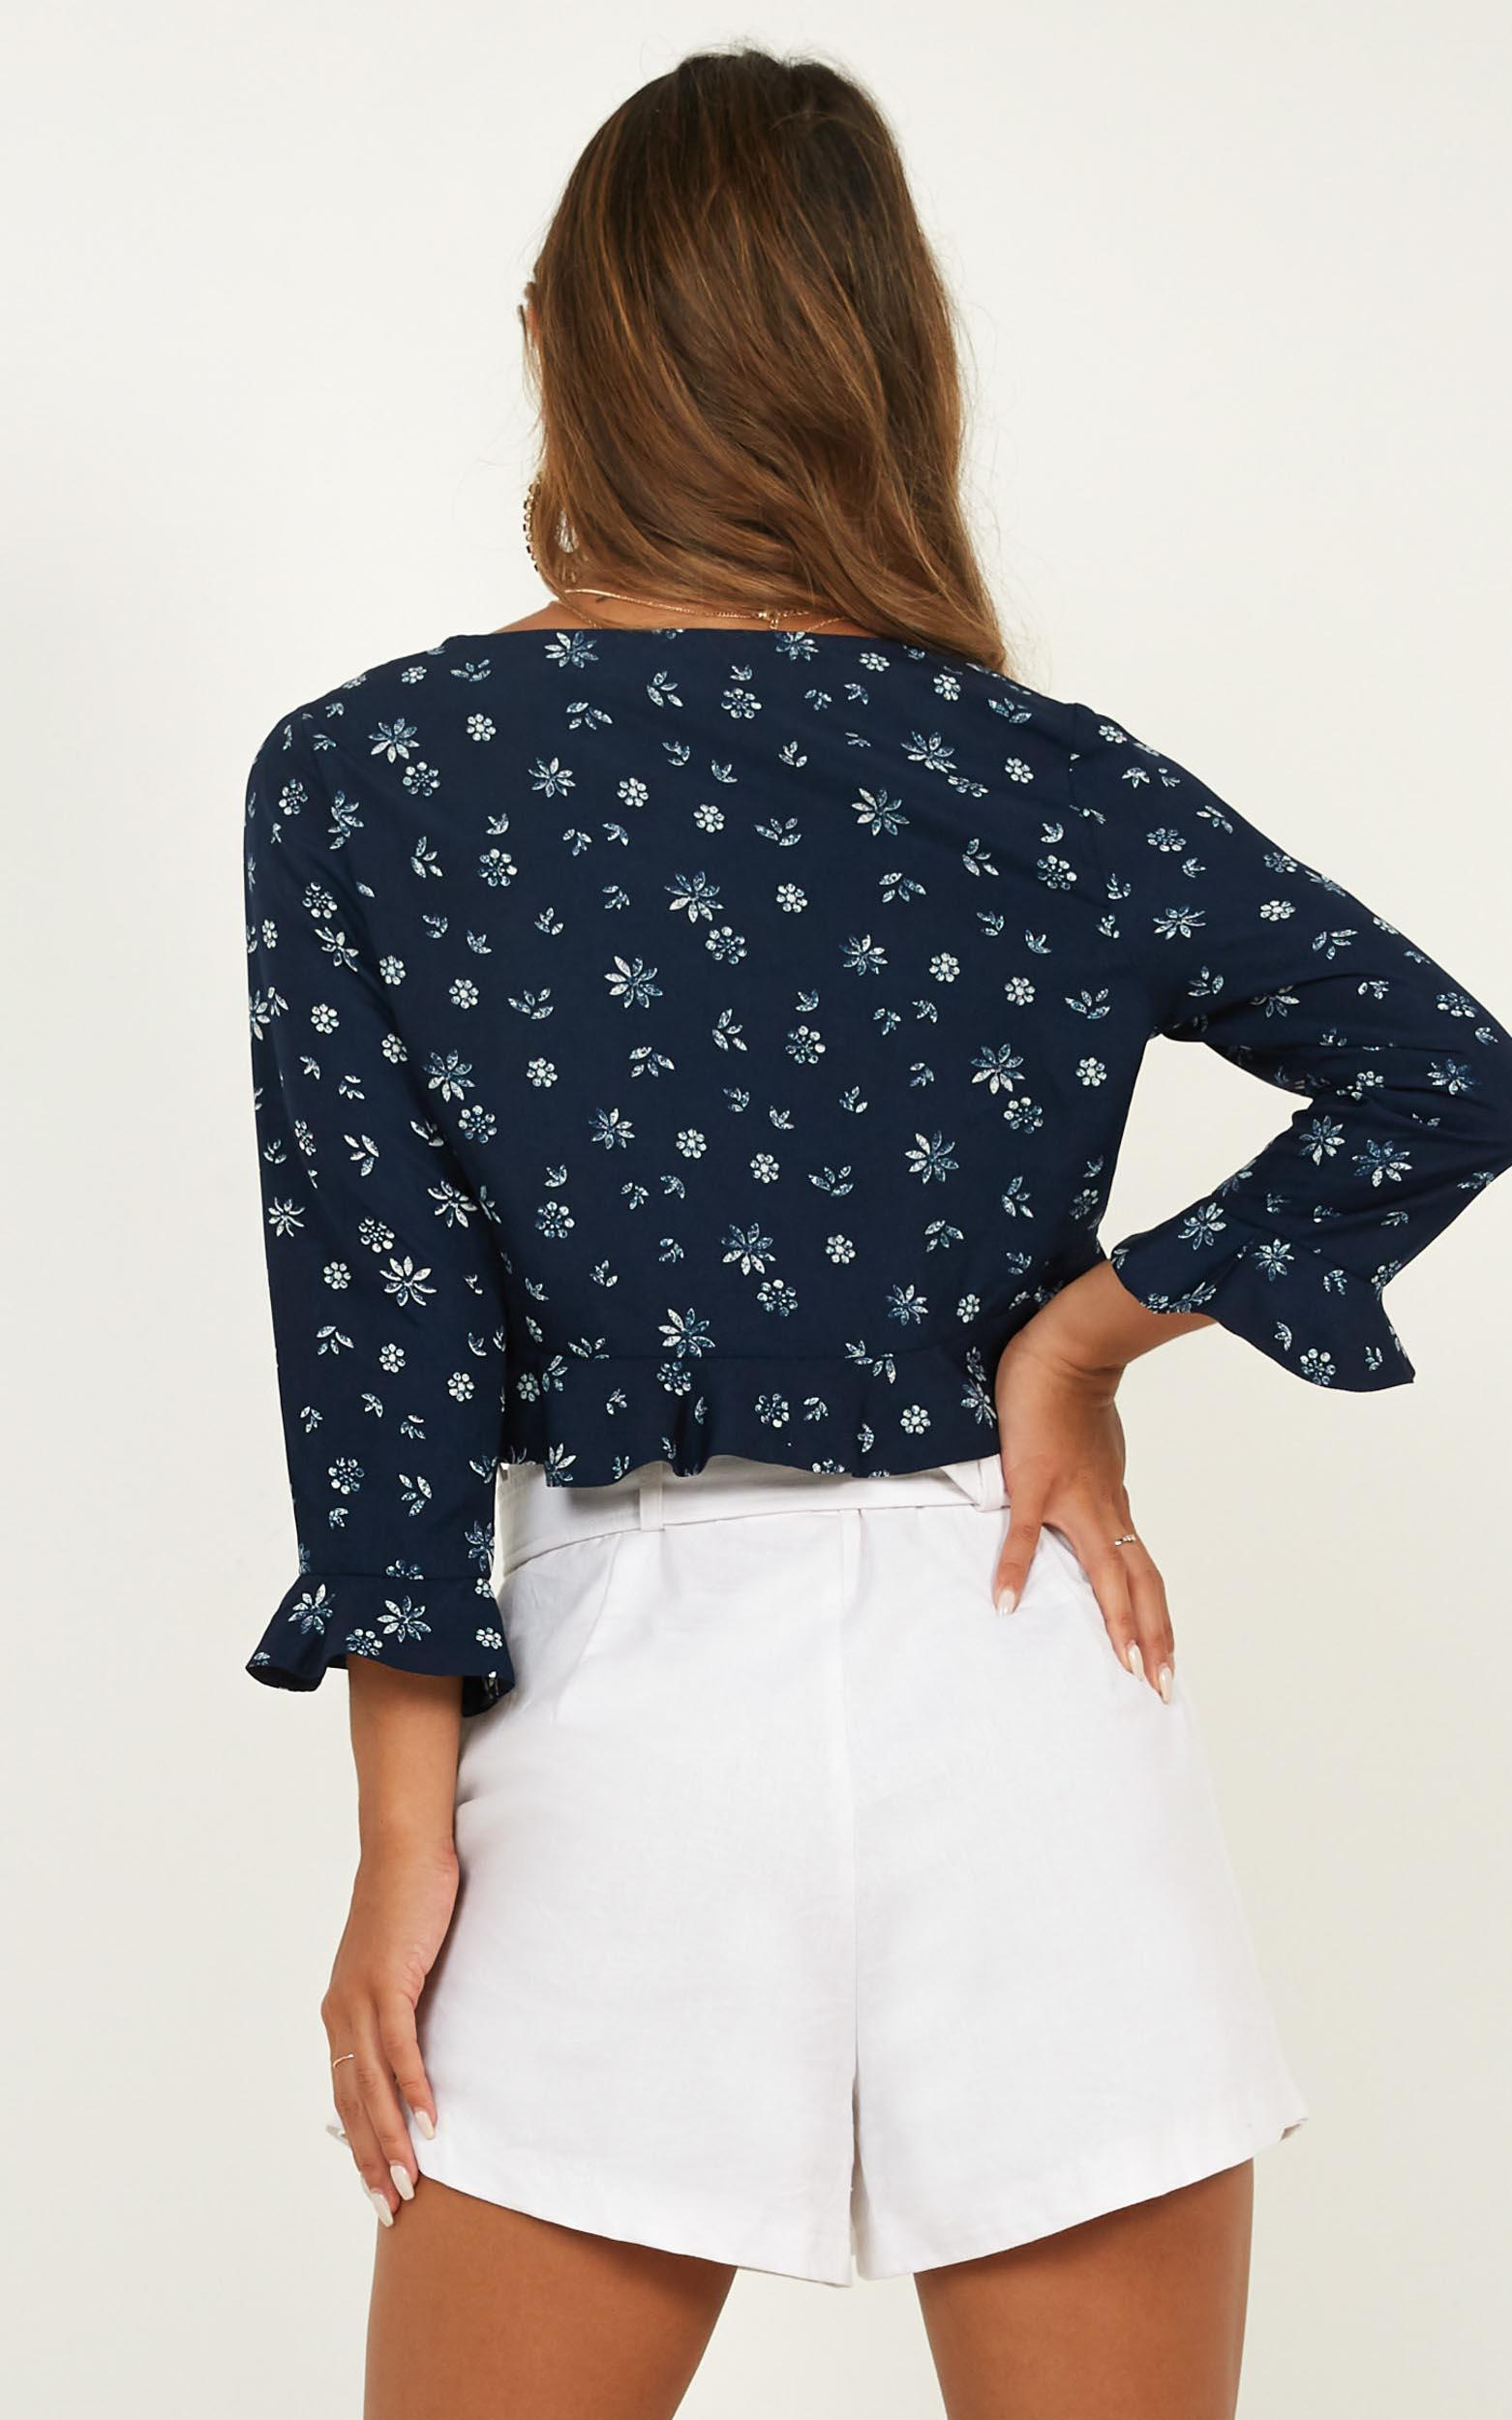 Frenemy Top in navy floral - 18 (XXXL), Navy, hi-res image number null